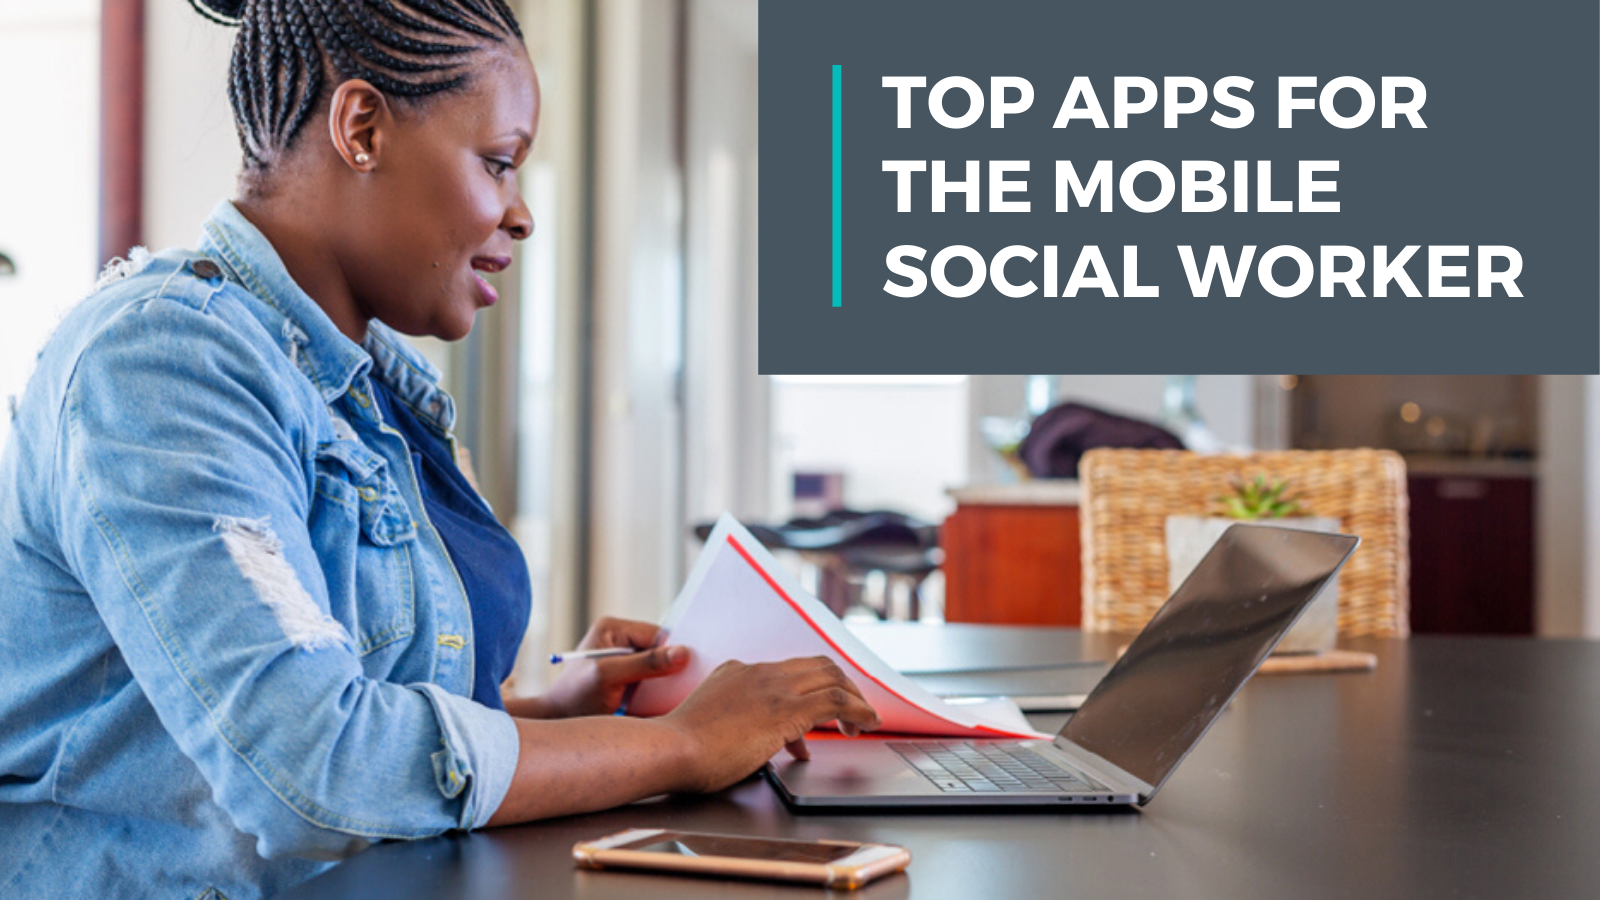 Apps for the Mobile Social Worker